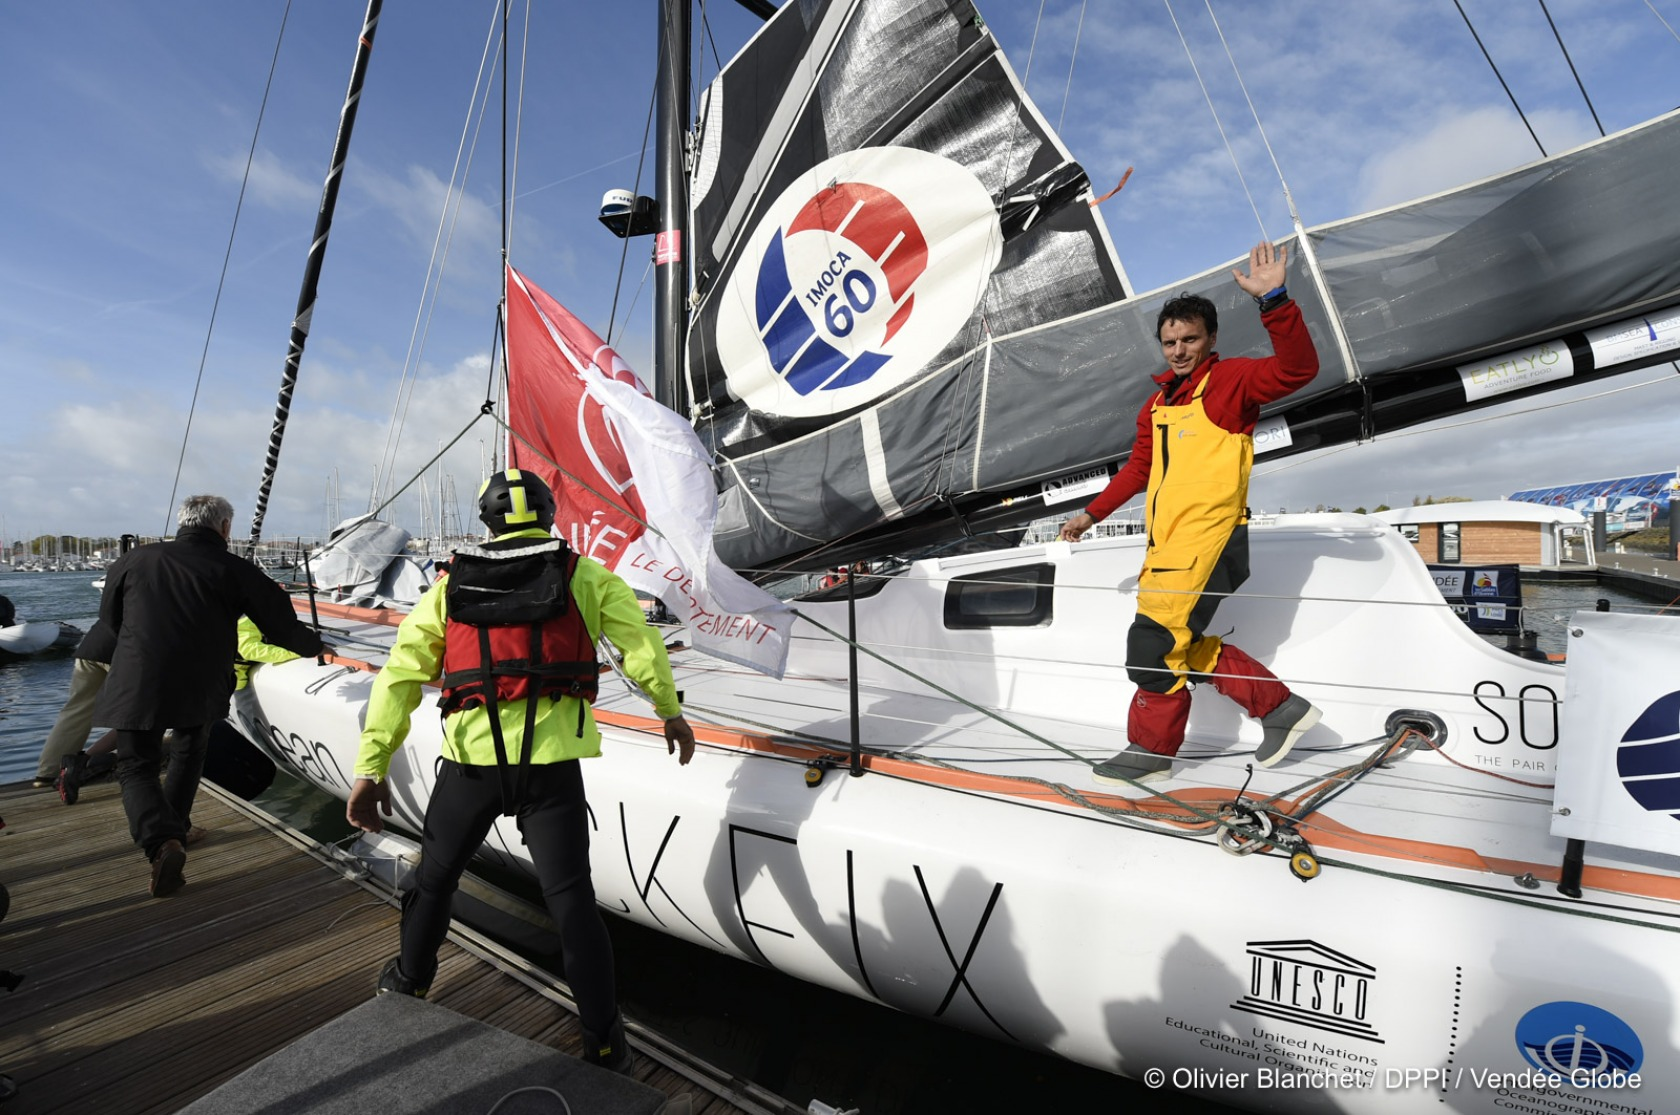 http://www.vendeeglobe.org/medias/03/05/30563/didac-costa-esp-skipper-one-planet-one-ocean-re-start-in-the-vendee-globe-race-in-les-sables-d-olonne-france-on-november-10th-2016-photo-olivier-blanchet-dppi-vendee-globedidac-costa-esp-skipper-one-planet-one-ocean-retour-dans-la-cou-r-1680-1200.jpg